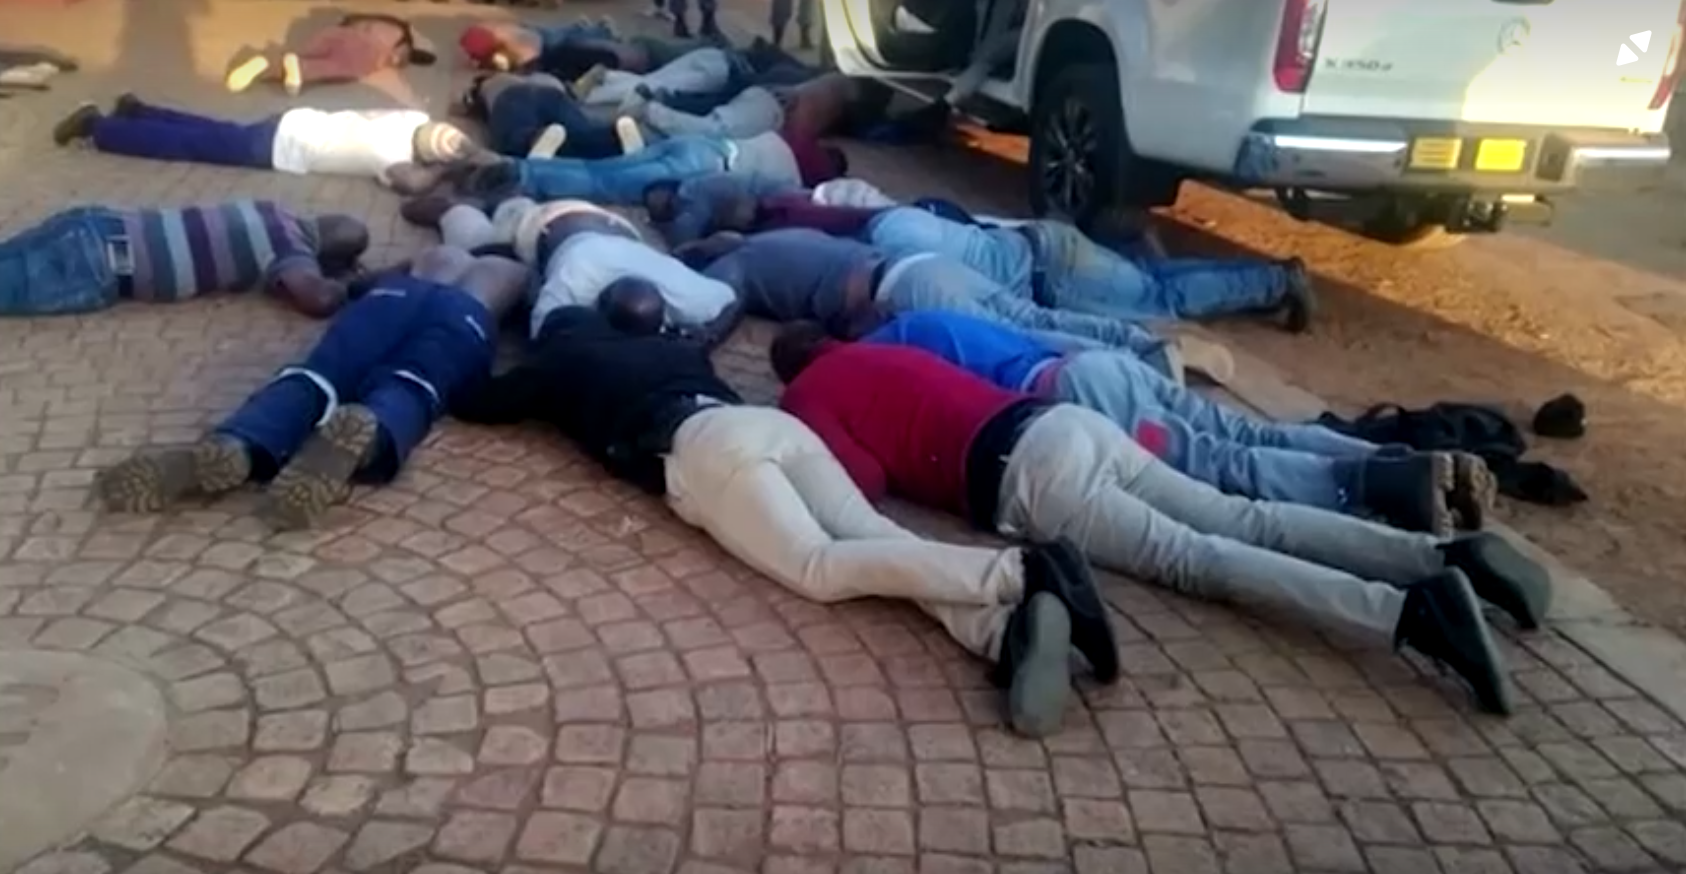 40 people were arrested, including police officers, when an armed group stormed the International Pentecostal Holiness Church in Zuurbekom, South Africa, July 11 2020.